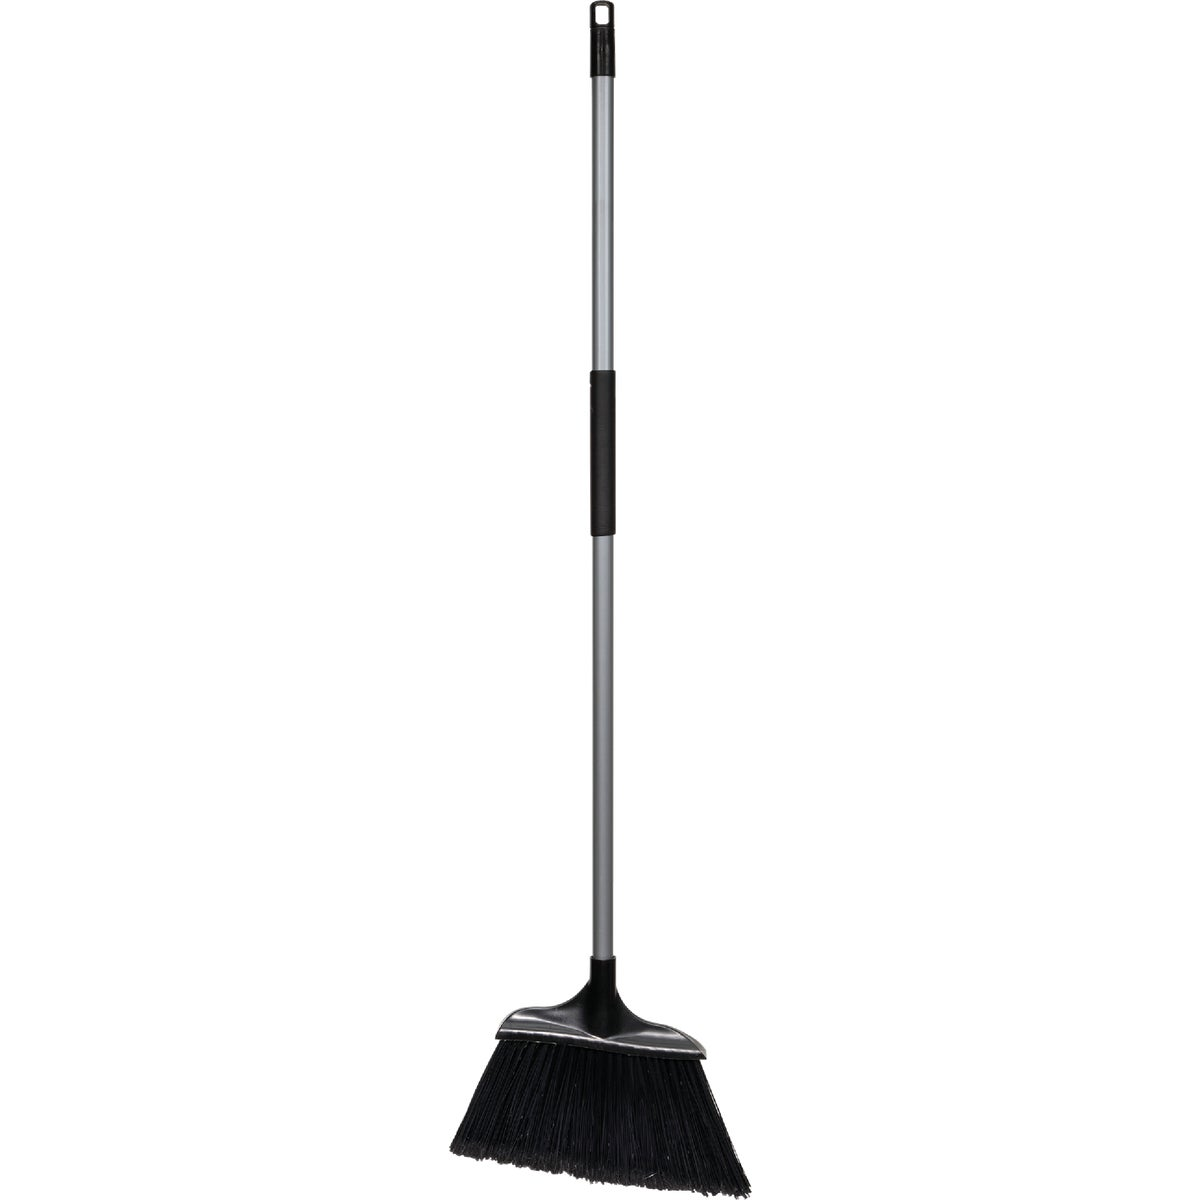 COMMERCIAL ANGLE BROOM